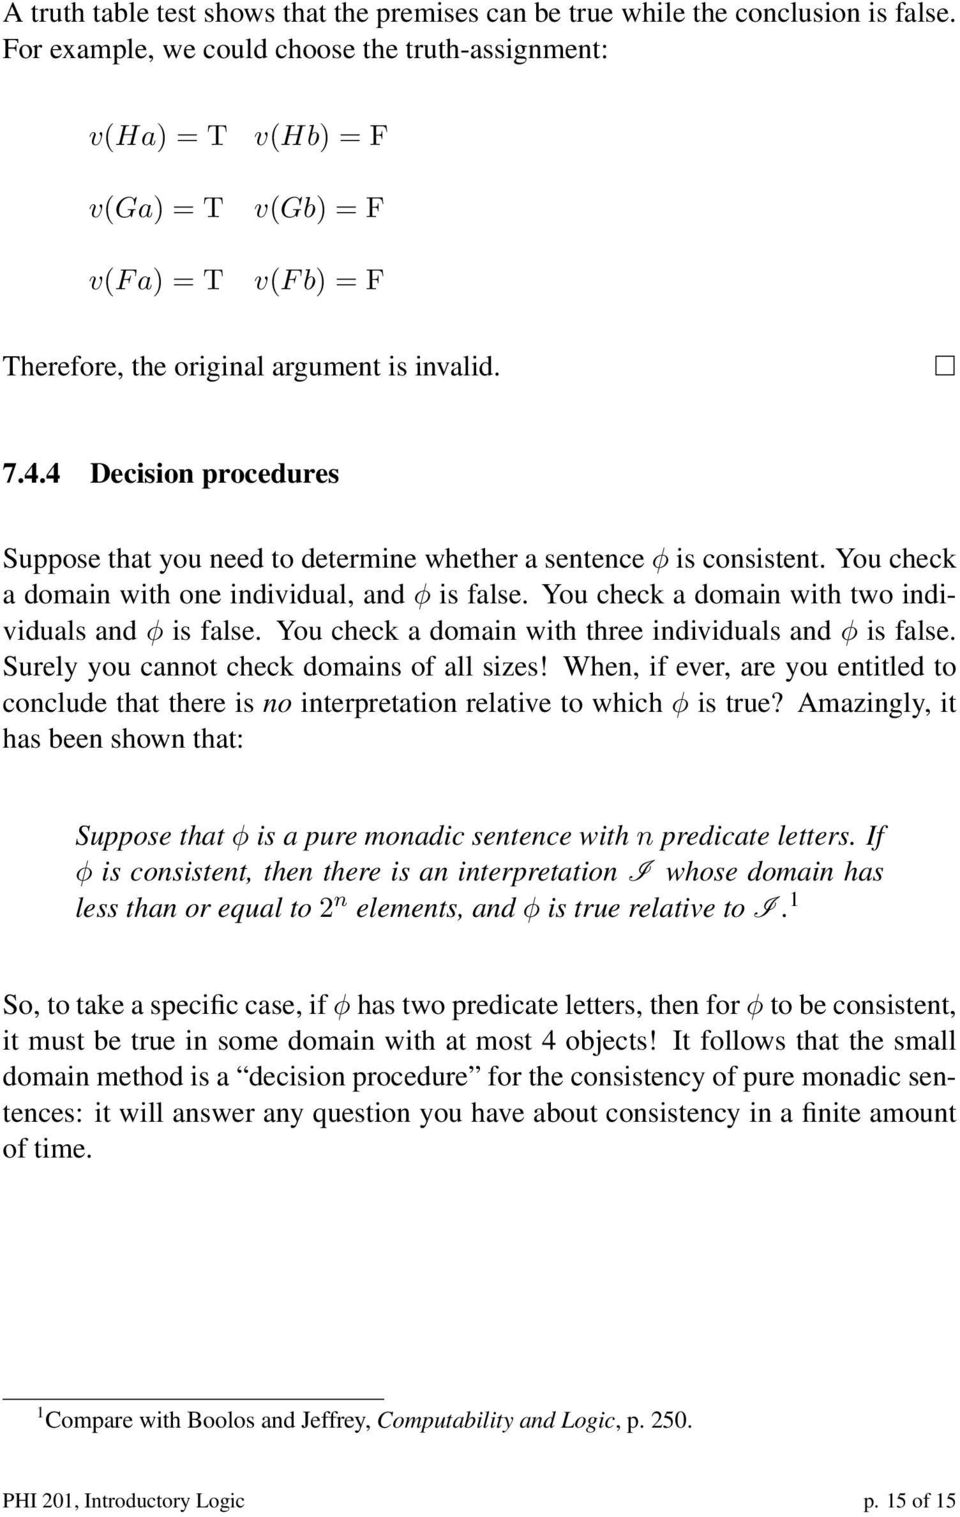 4 Decision procedures Suppose that you need to determine whether a sentence φ is consistent. You check a domain with one individual, and φ is false.